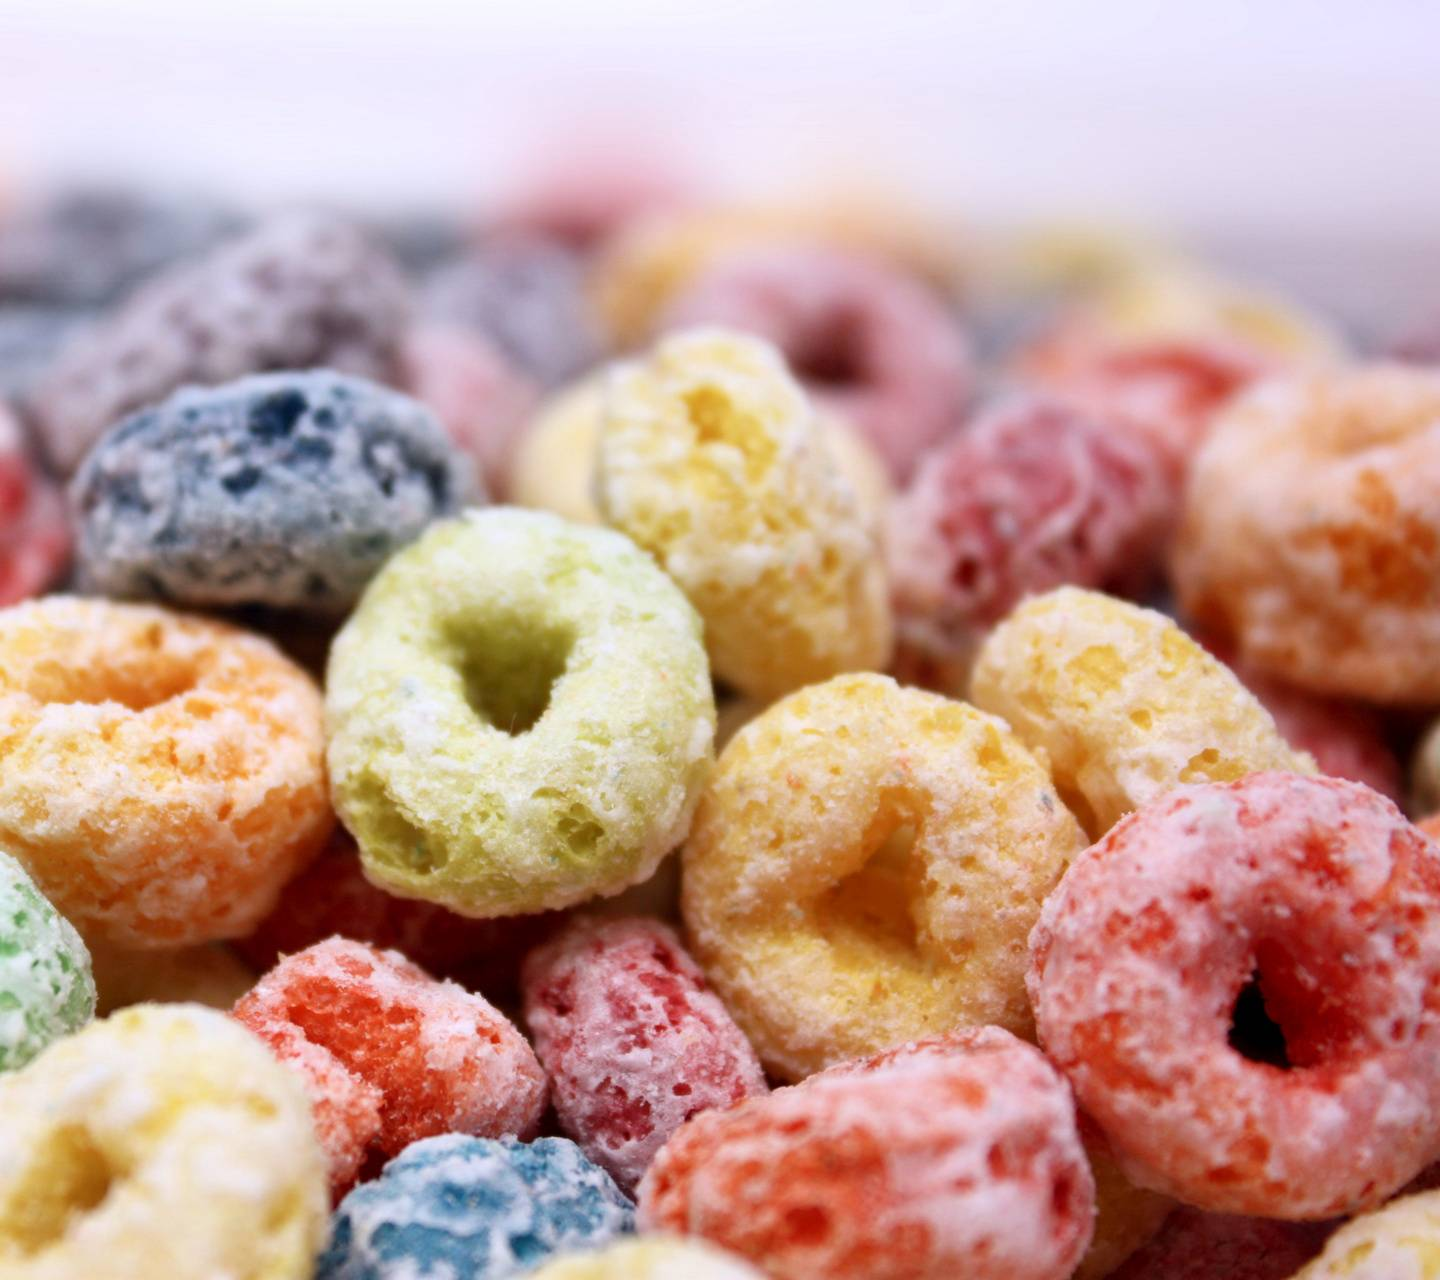 Froot Loops Wallpaper By Theradgasm 70 Free On Zedge